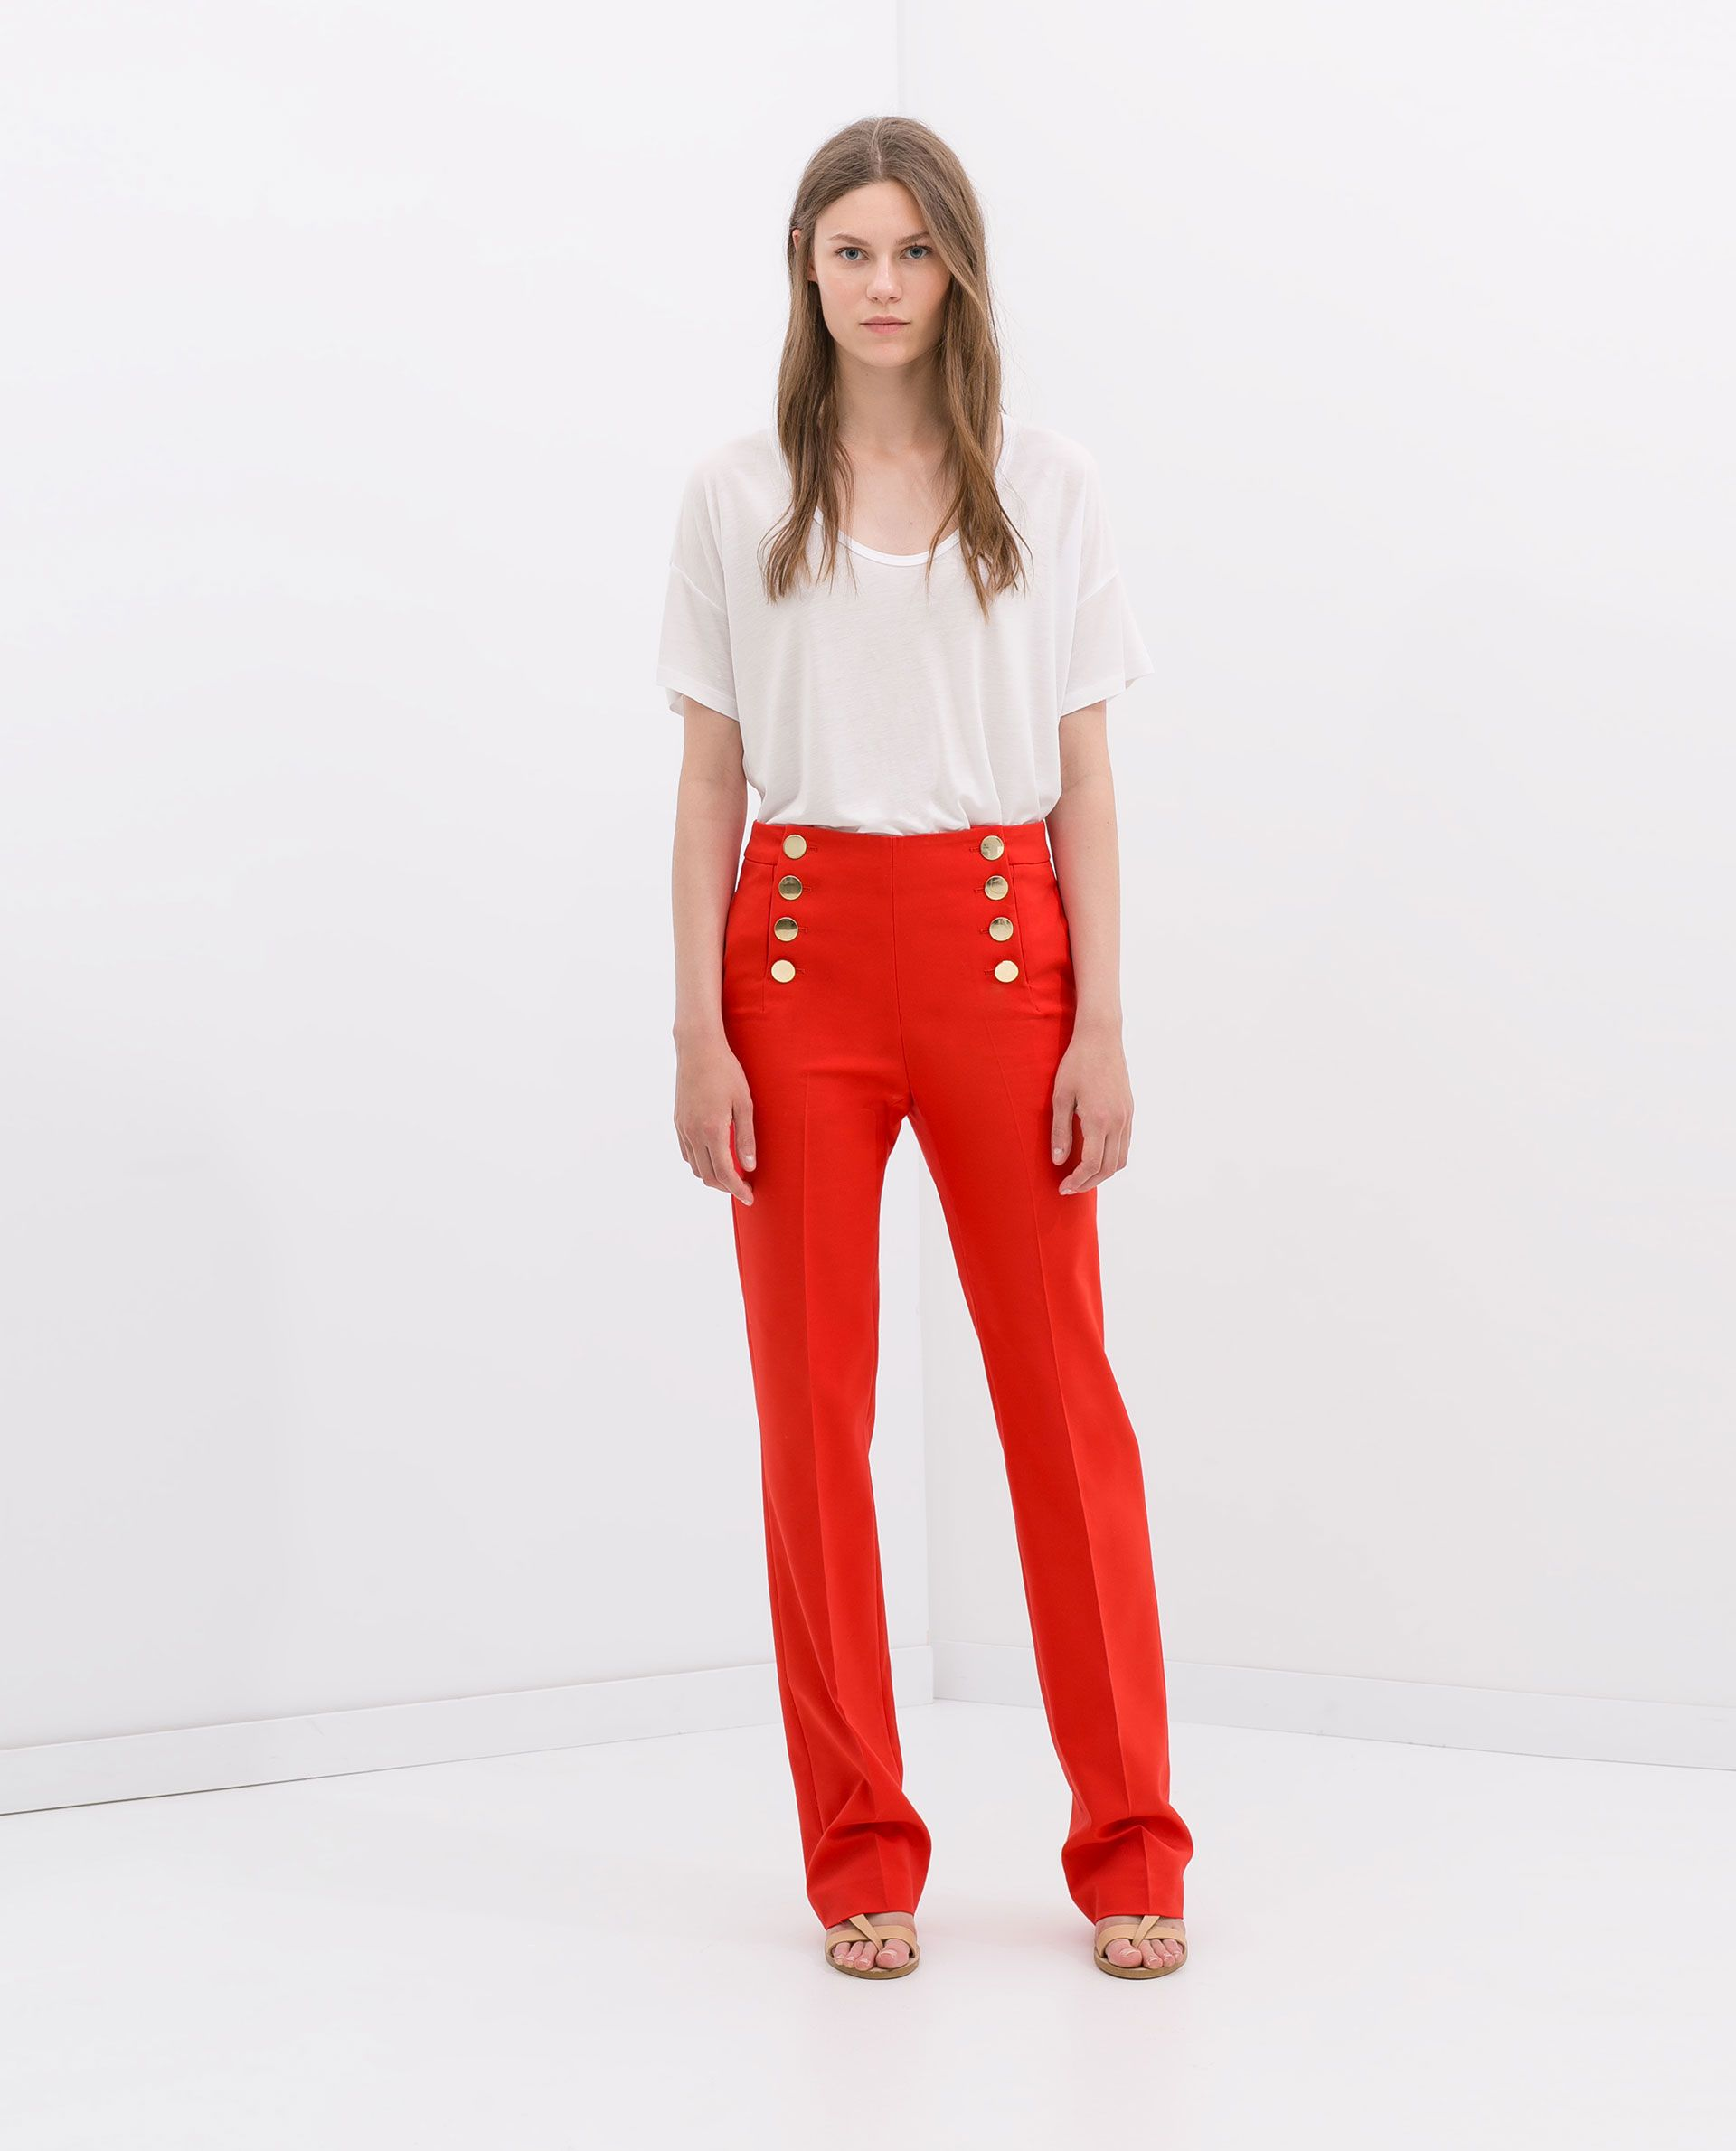 727129b8d6 I need a pair of red pants!!! TROUSERS WITH FRONT BUTTONS from Zara ...